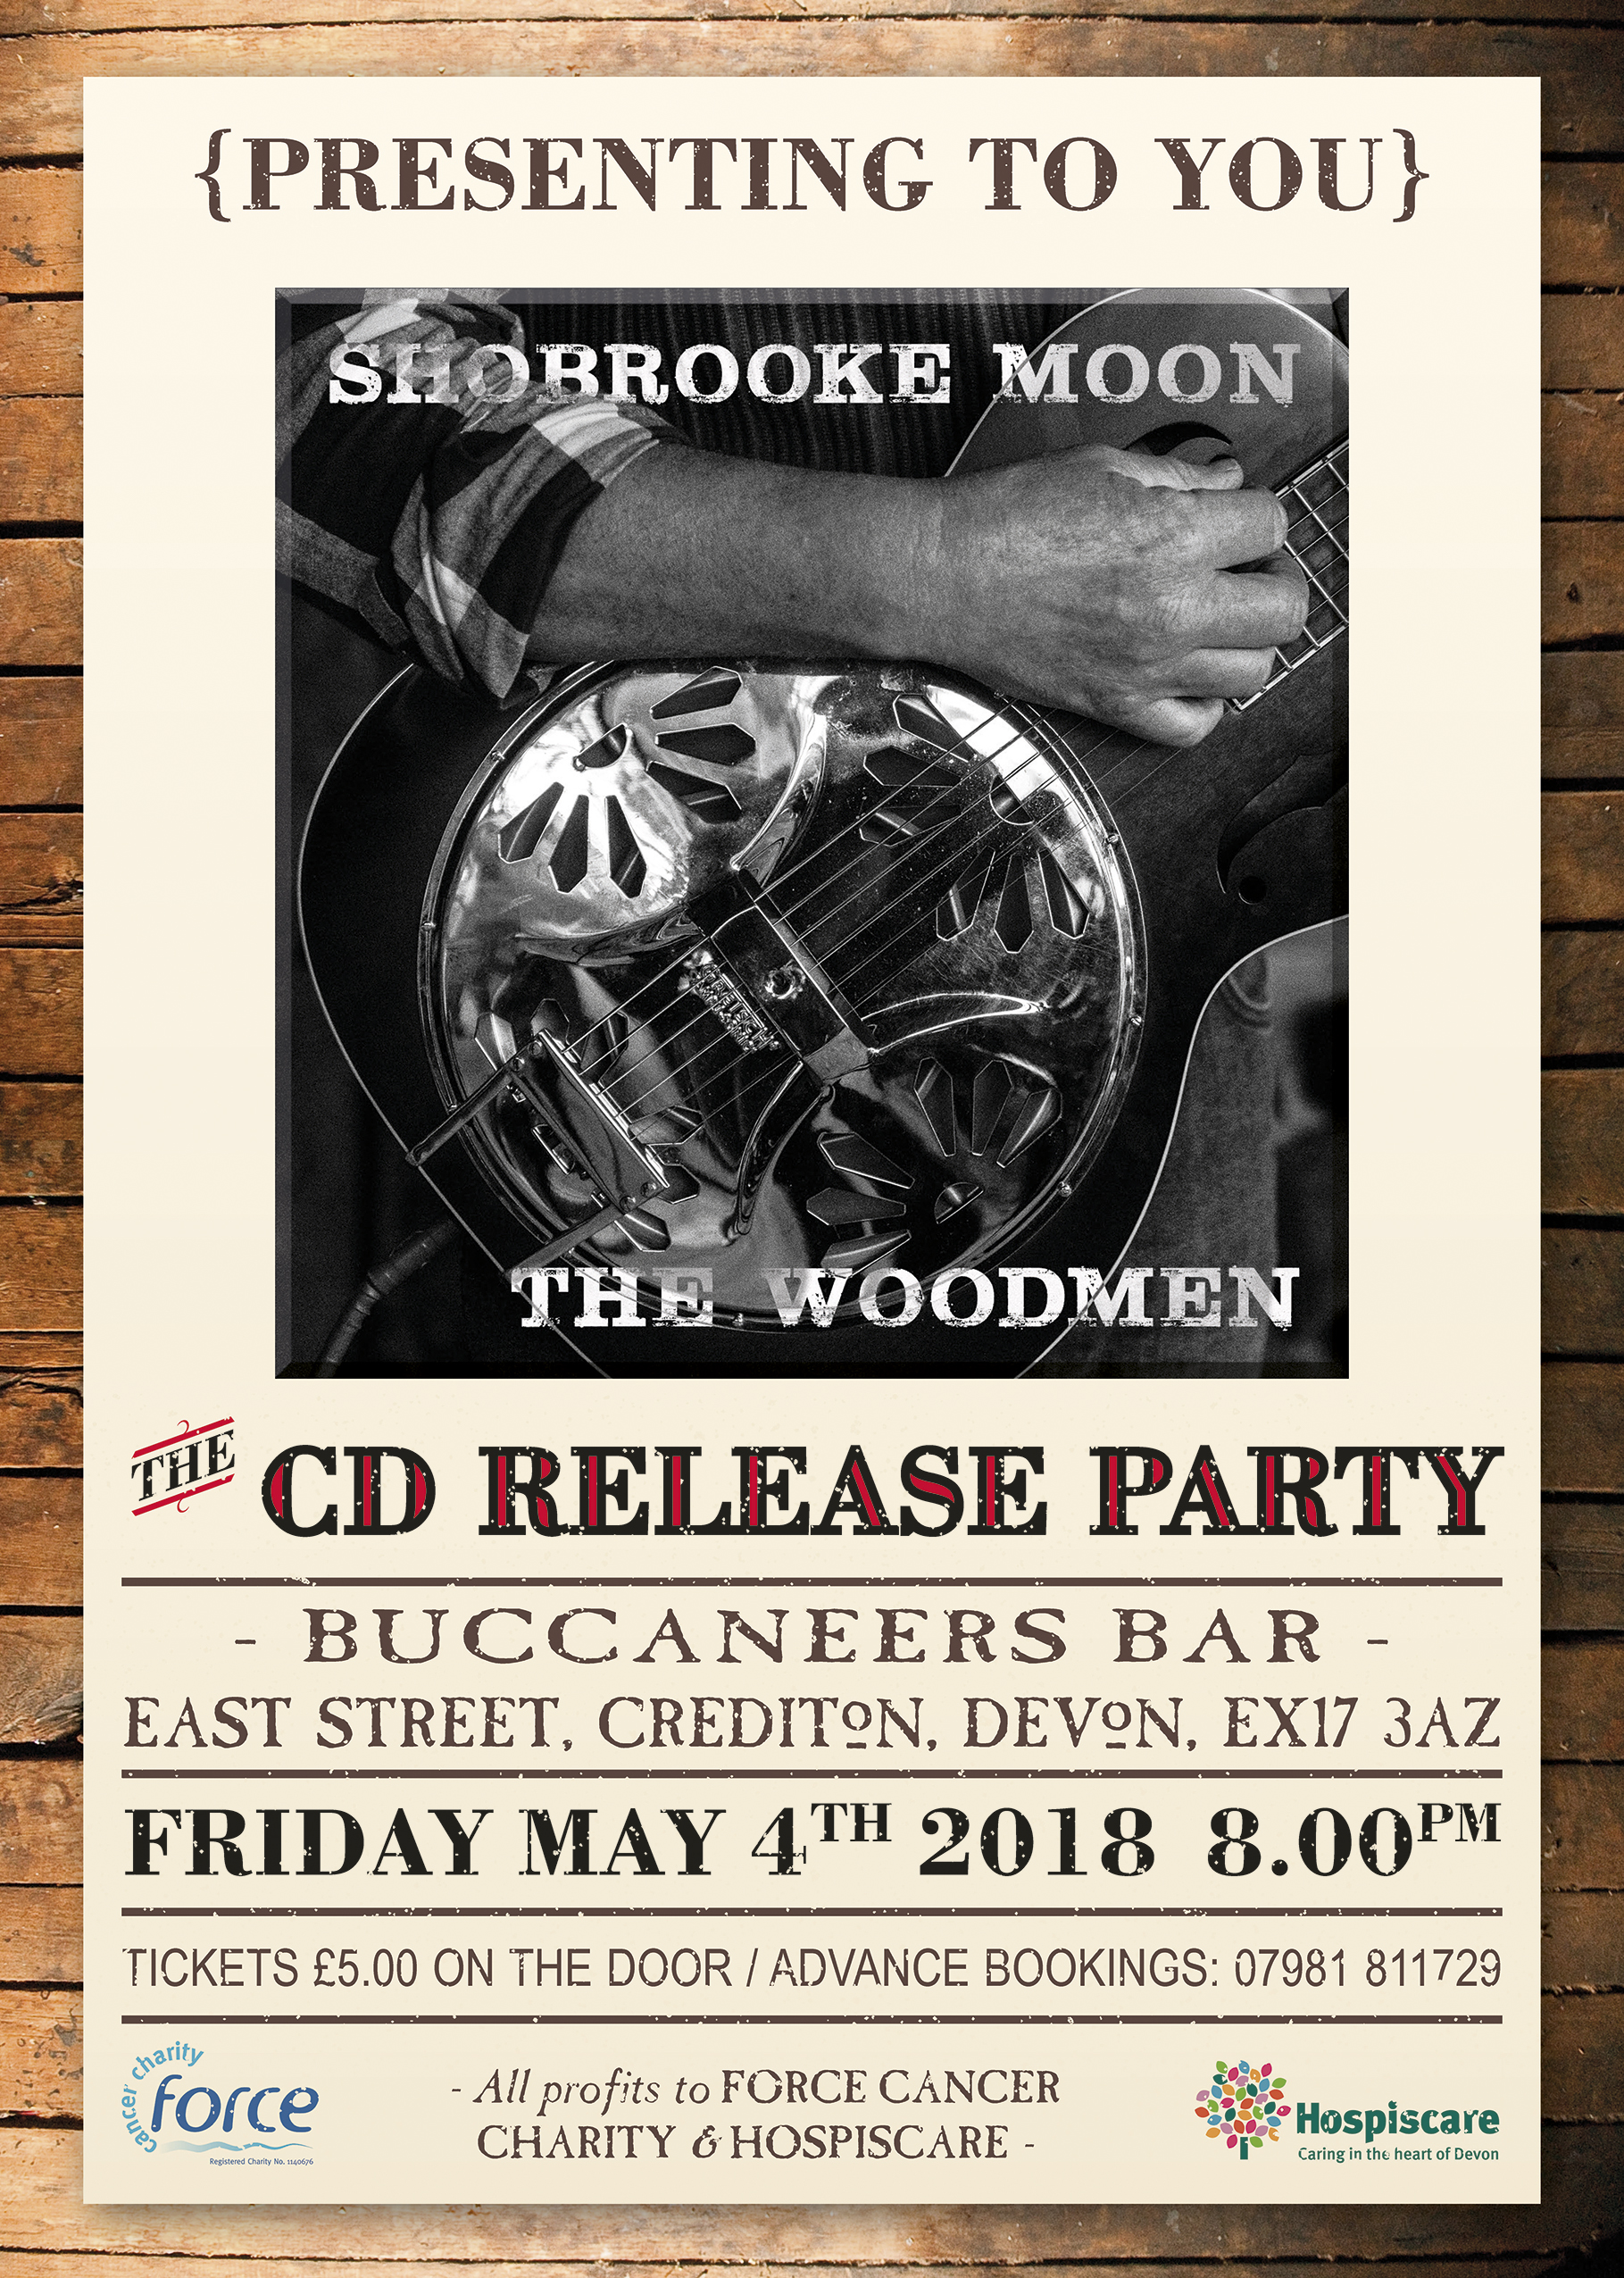 CD Release Party Bucanneers Bar East Street Crediton Friday 4th May 8pm